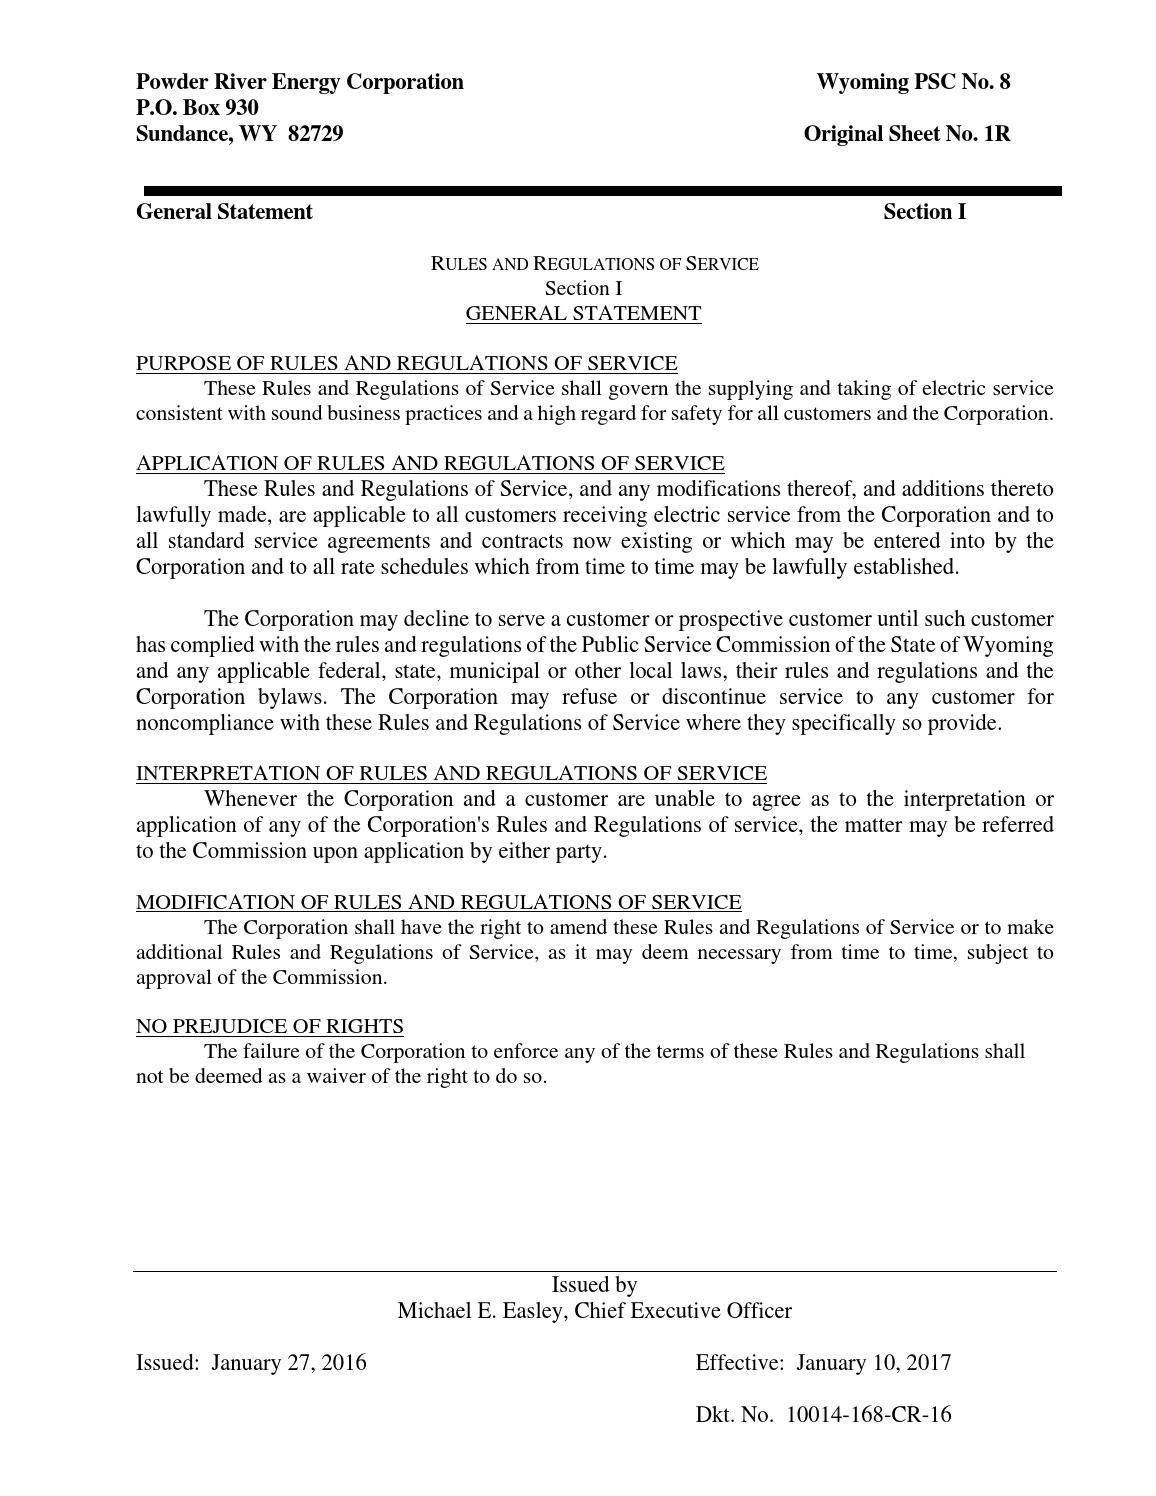 09-rules-regulations by Powder River Energy Corporation - issuu